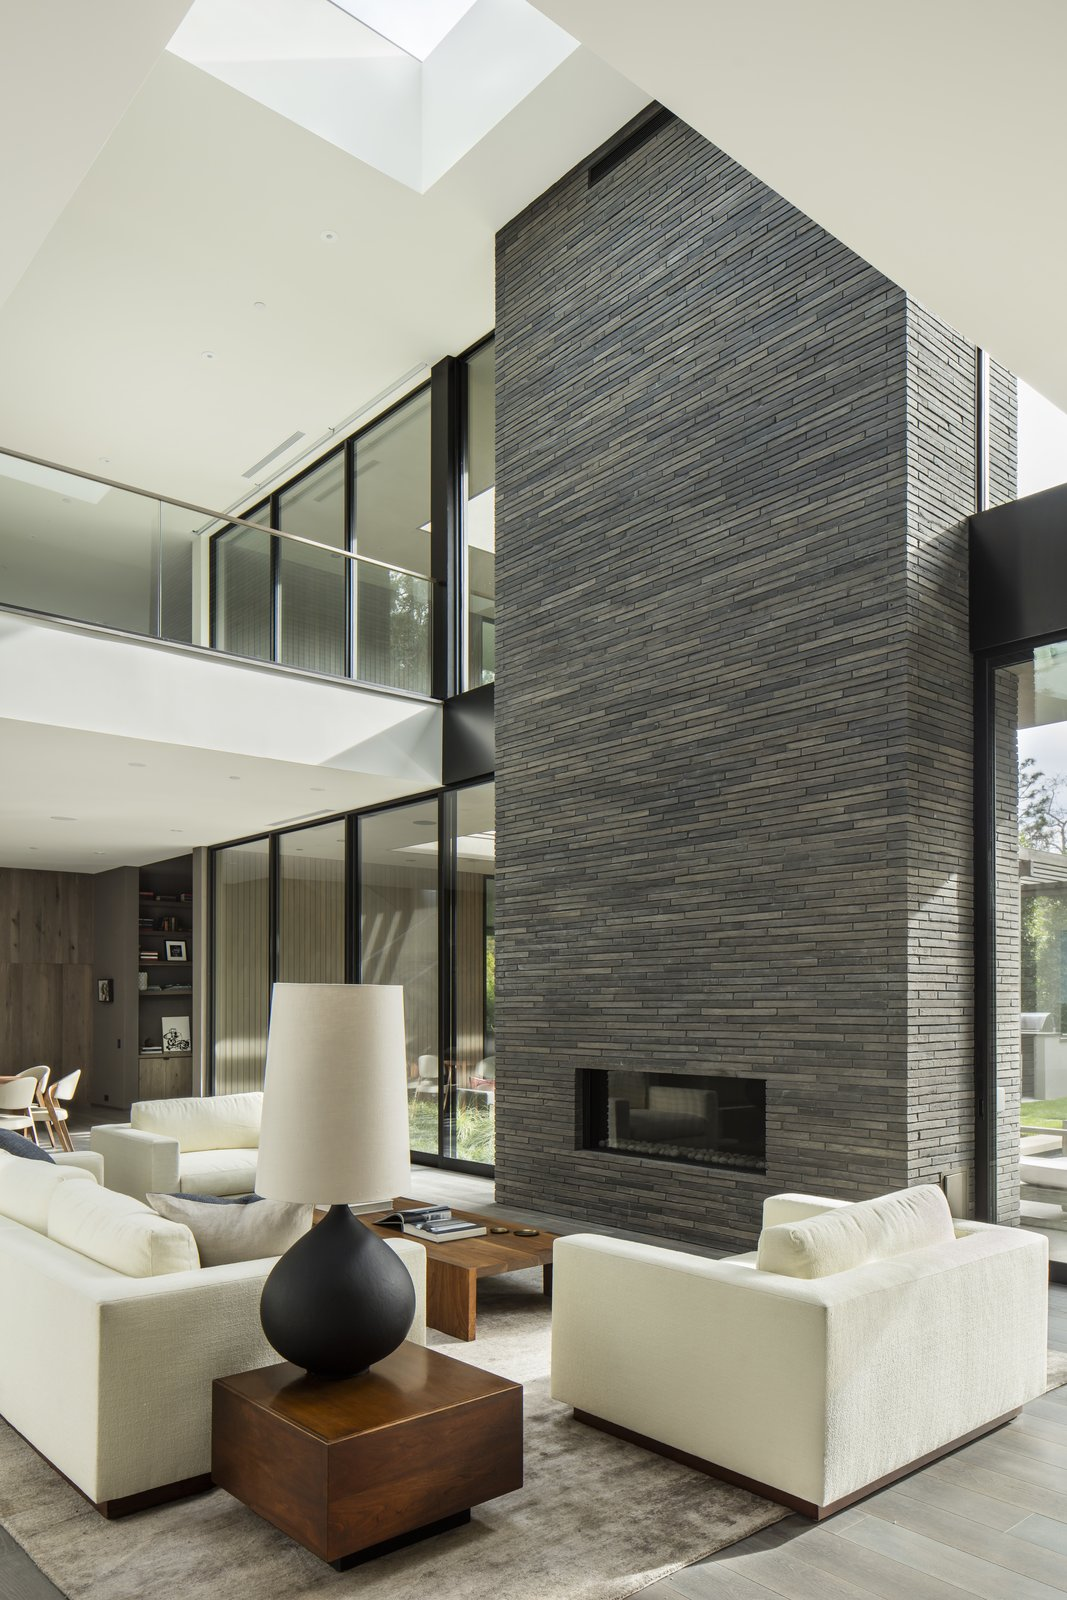 Living, Sofa, End Tables, Chair, Coffee Tables, Two-Sided, Medium Hardwood, Standard Layout, Rug, and Table The brick-inlay structure anchors the open-plan living room.  Living Two-Sided Standard Layout Medium Hardwood Photos from Live Large in This Marmol Radziner–Designed Home That's Asking $16.9M